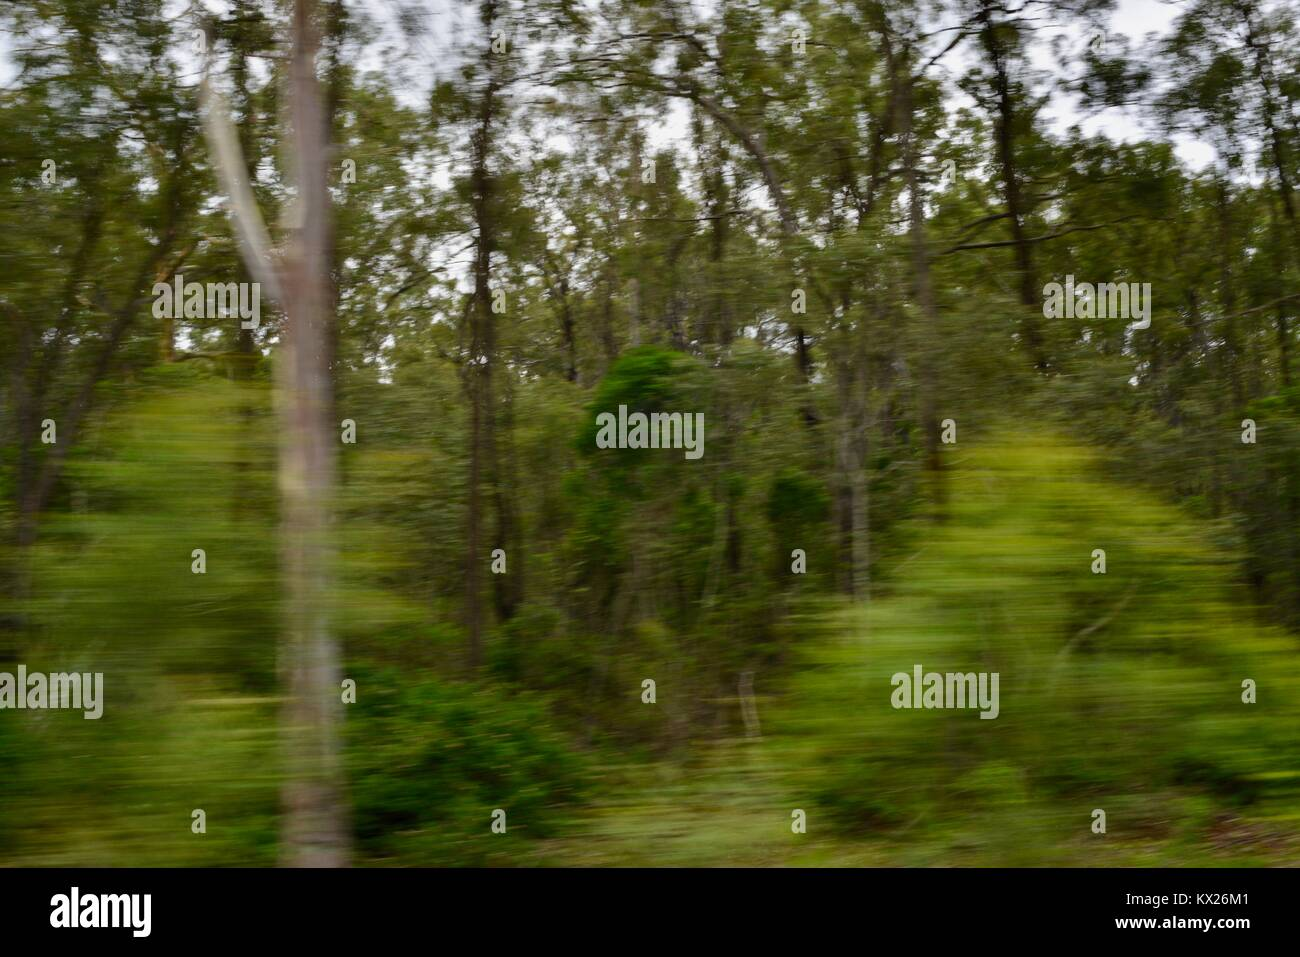 Trees moving due to camera induced blur, Queensland, Australia - Stock Image